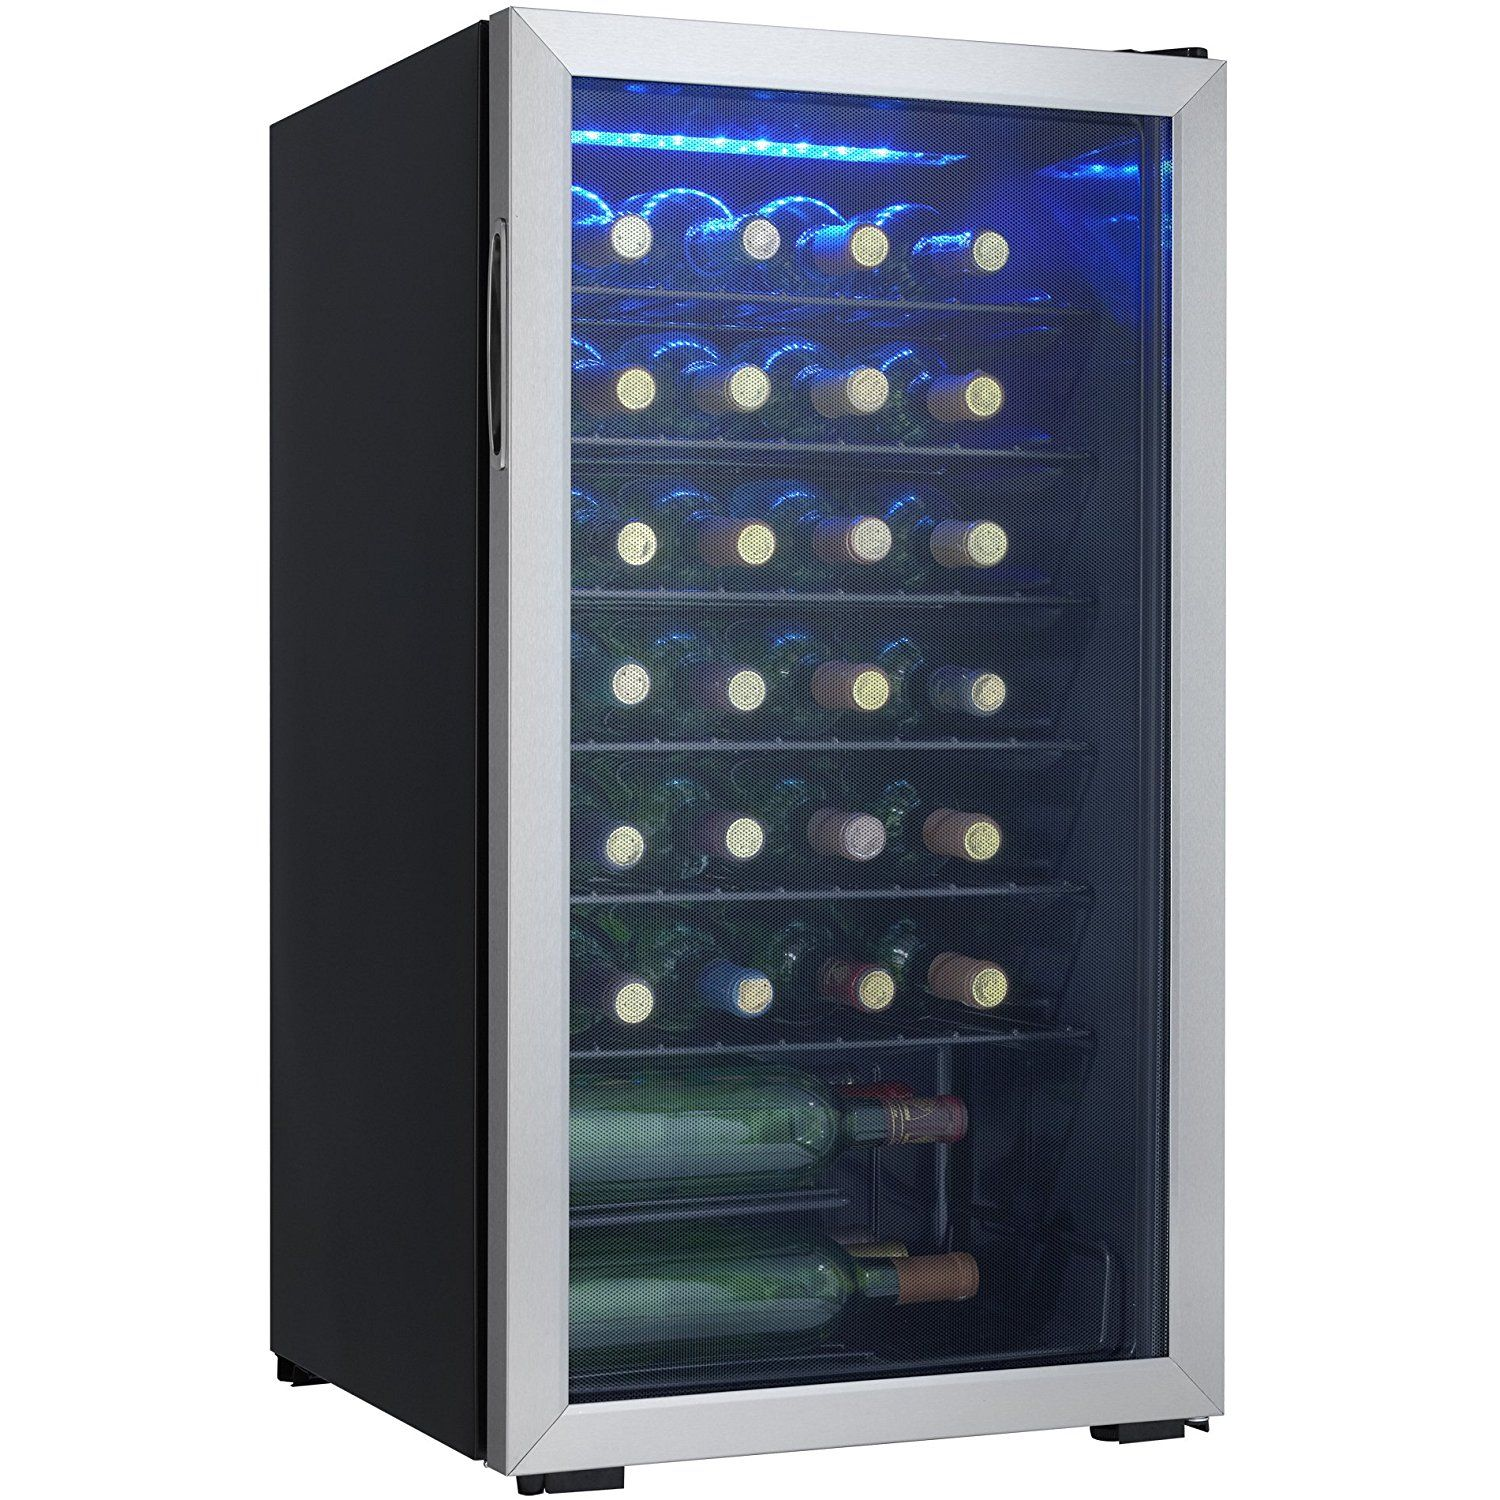 Danby 36 Bottle Freestanding Wine Cooler  Details Can Be